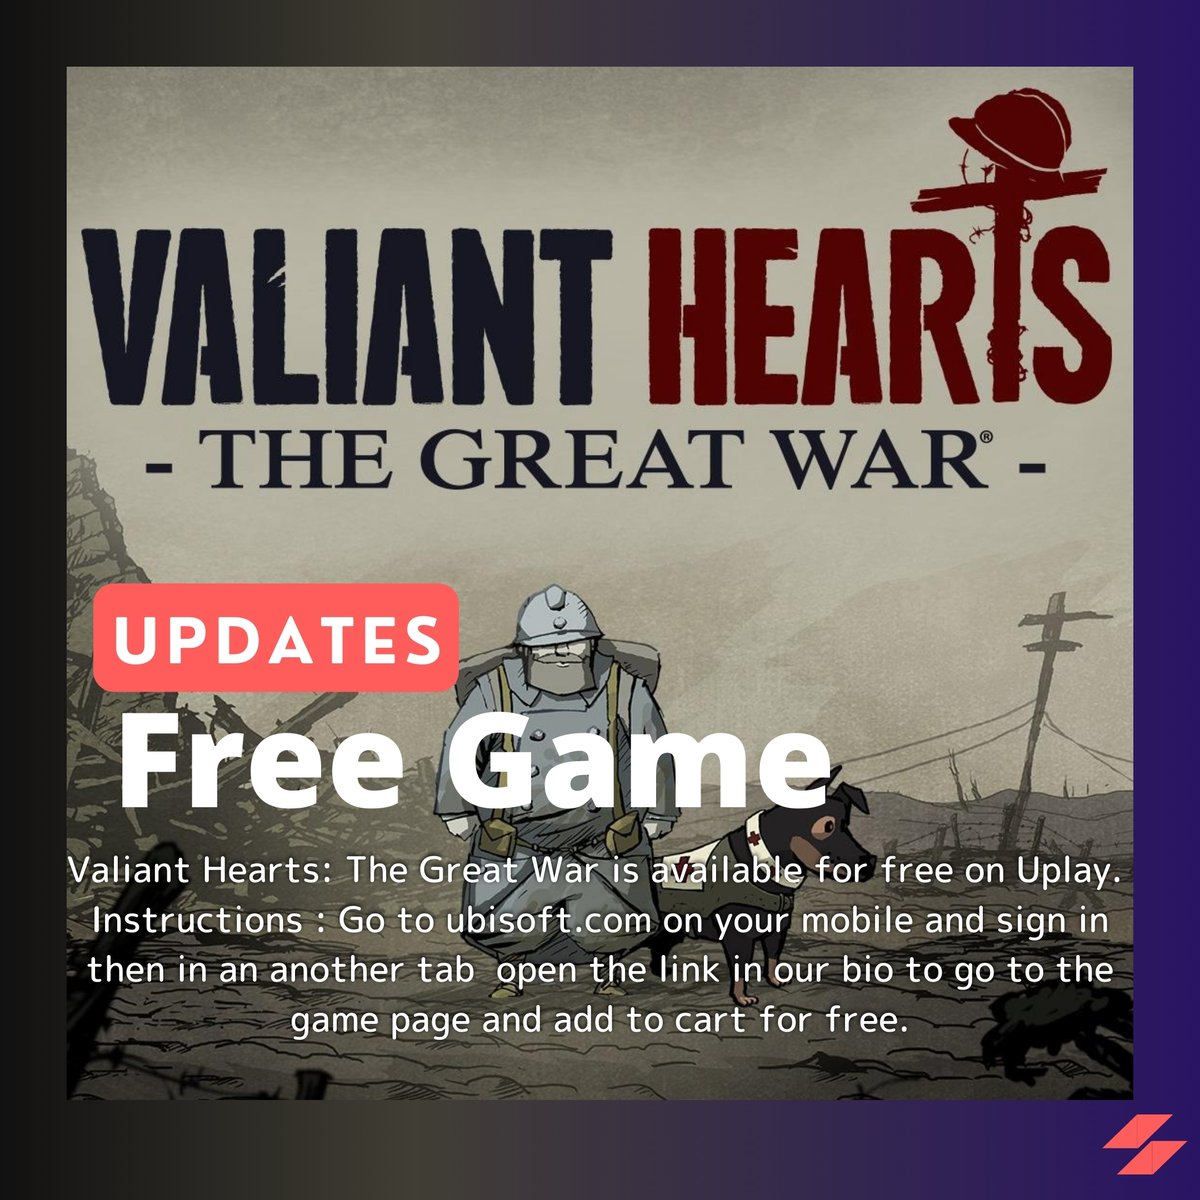 Free Game Valiant Hearts - The Great War   https://store.ubi.com/cn/game?pid=56c4948d88a7e300458b4890&dwvar_56c4948d88a7e300458b4890 …  #freegame #ubisoft #ubisoftgames #uplay #freetograb #game #gamer #gamingpic.twitter.com/vBMf3wm8vy